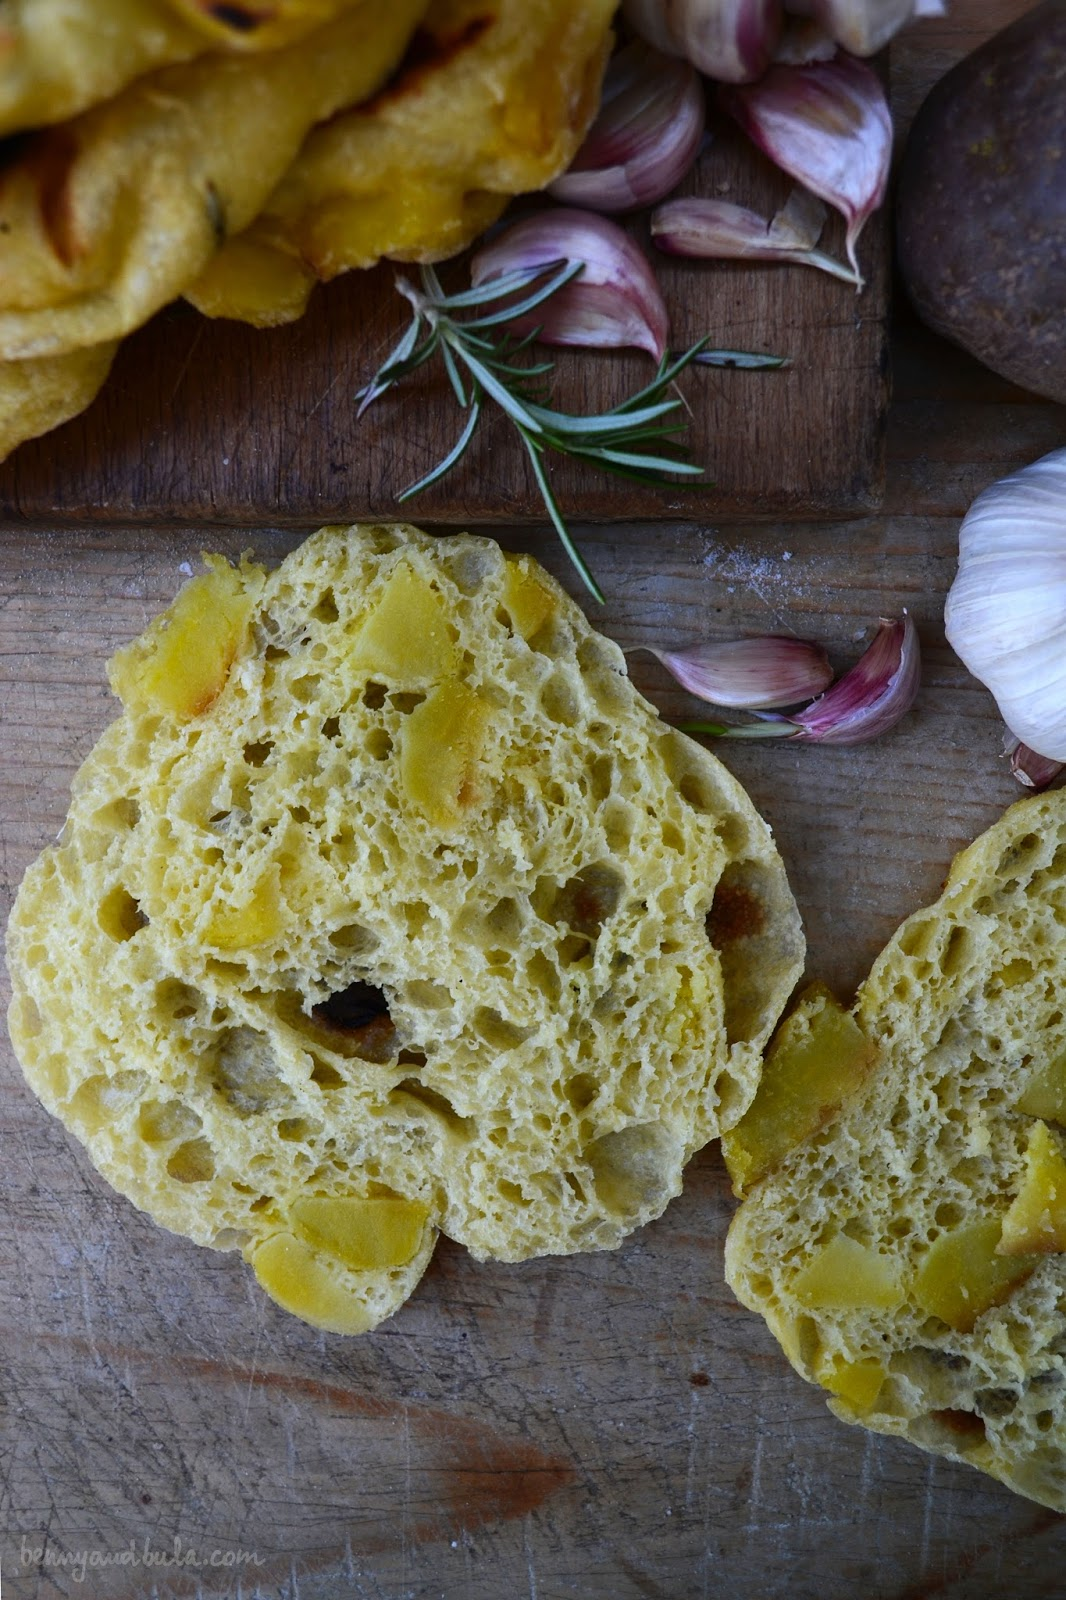 focaccia di semola con patate/ semolina flatbread with potatoes